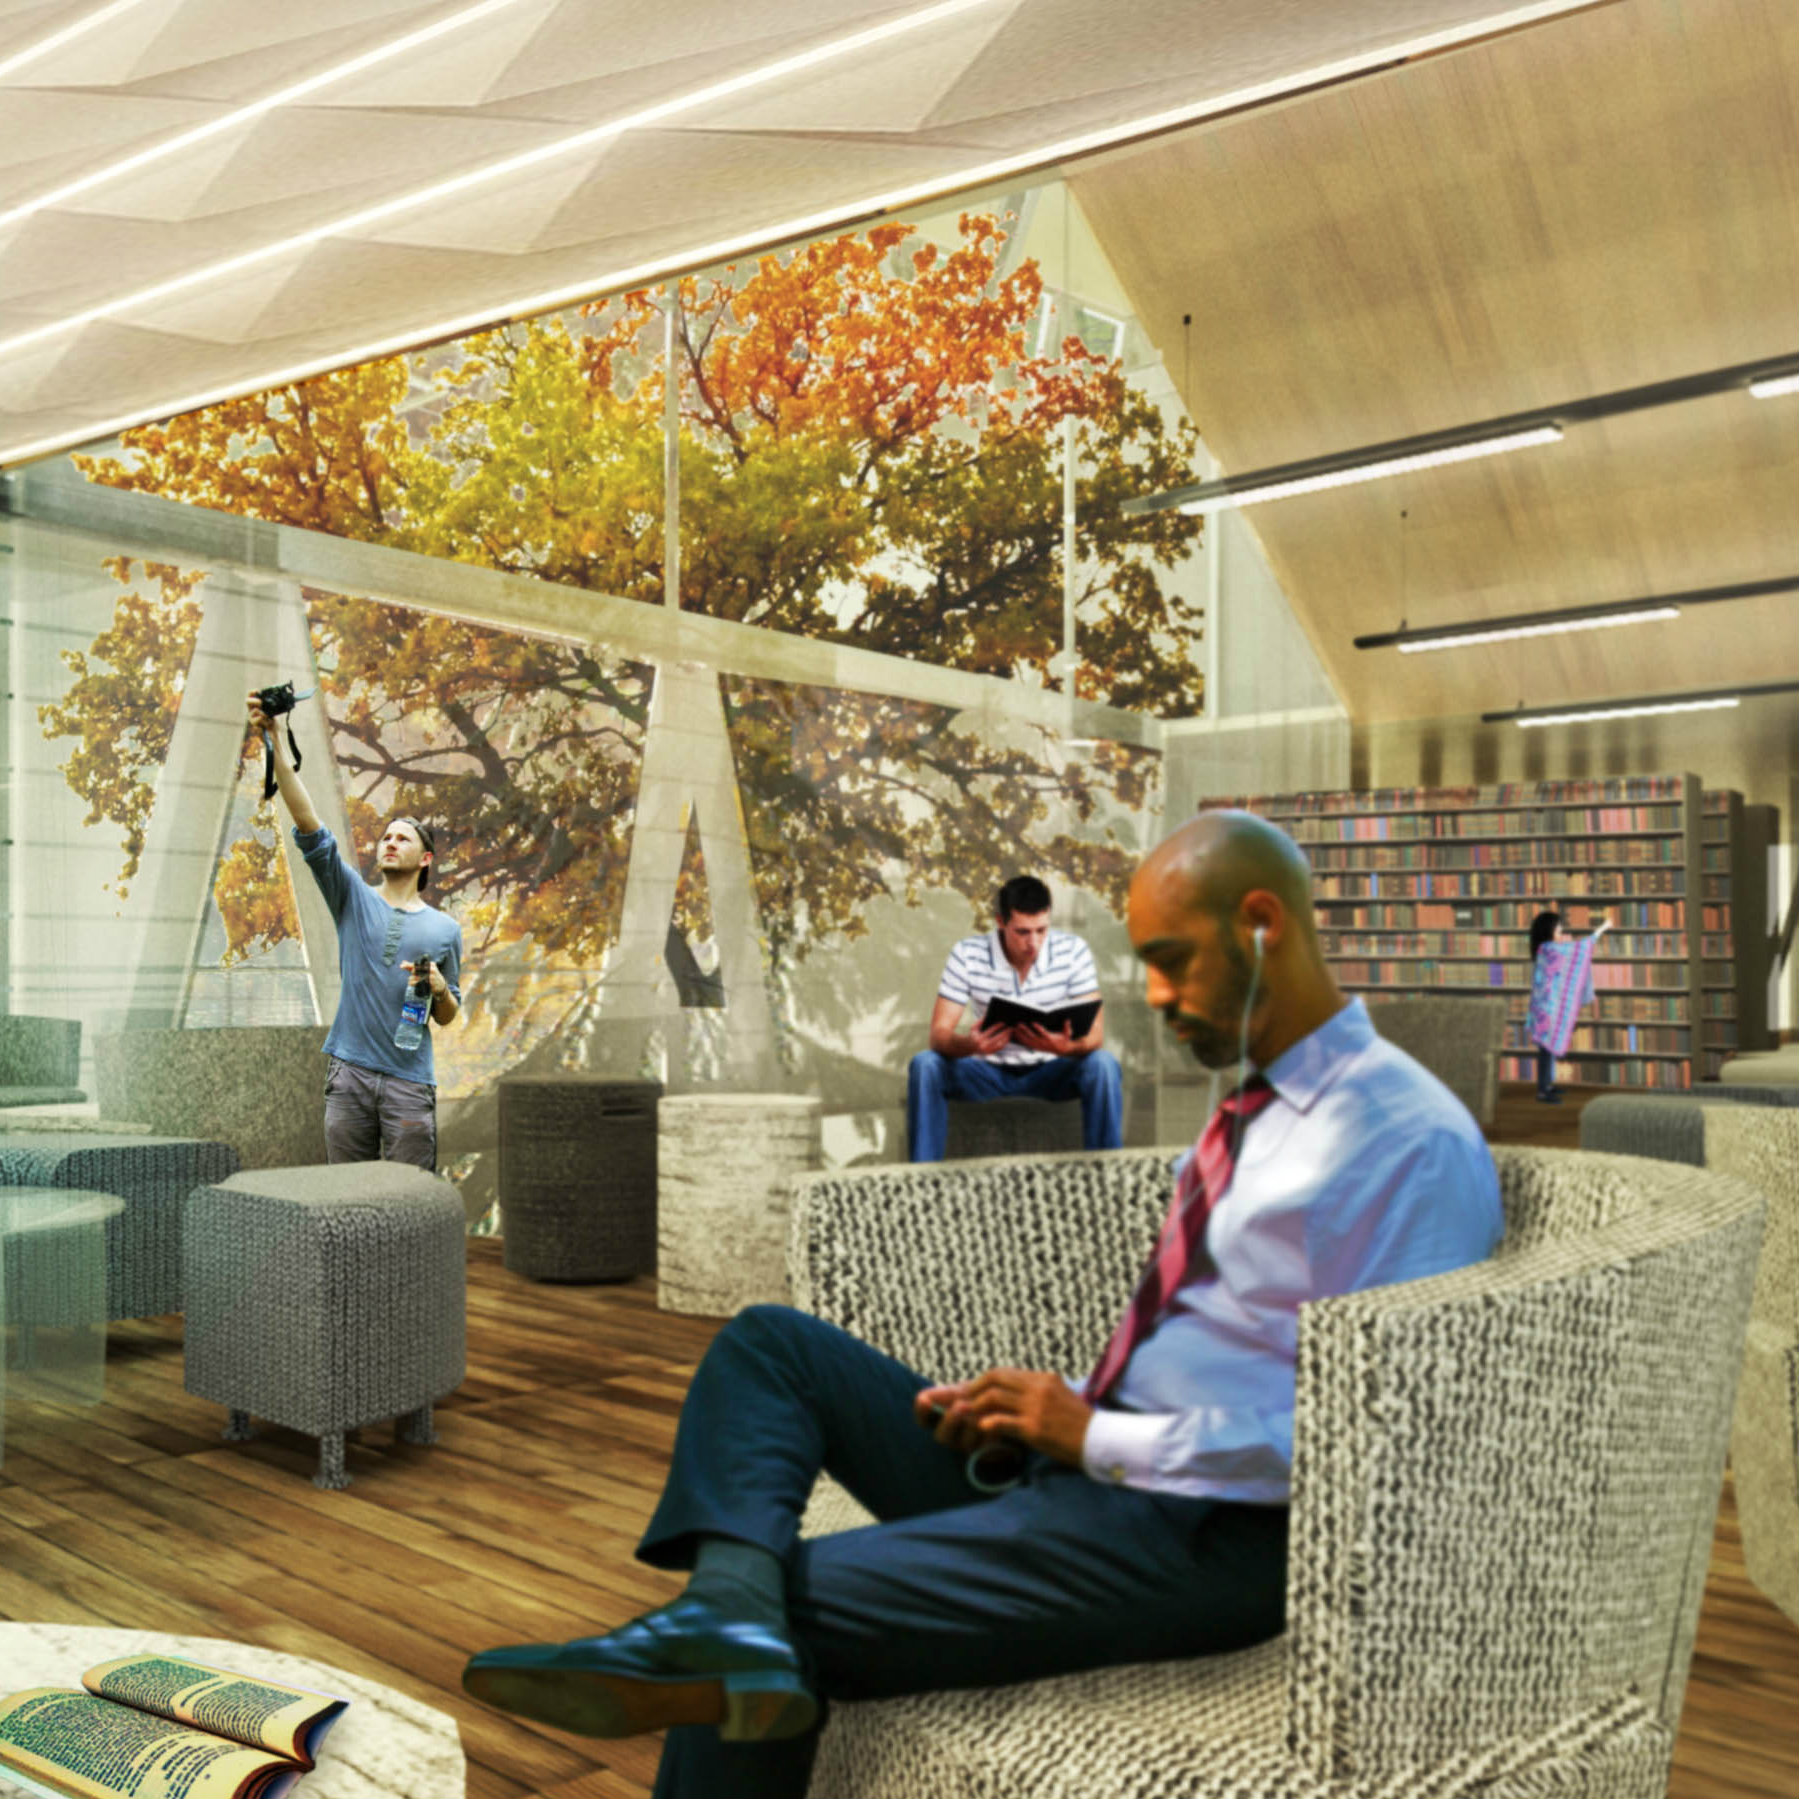 rendering of a library with a man reading a book